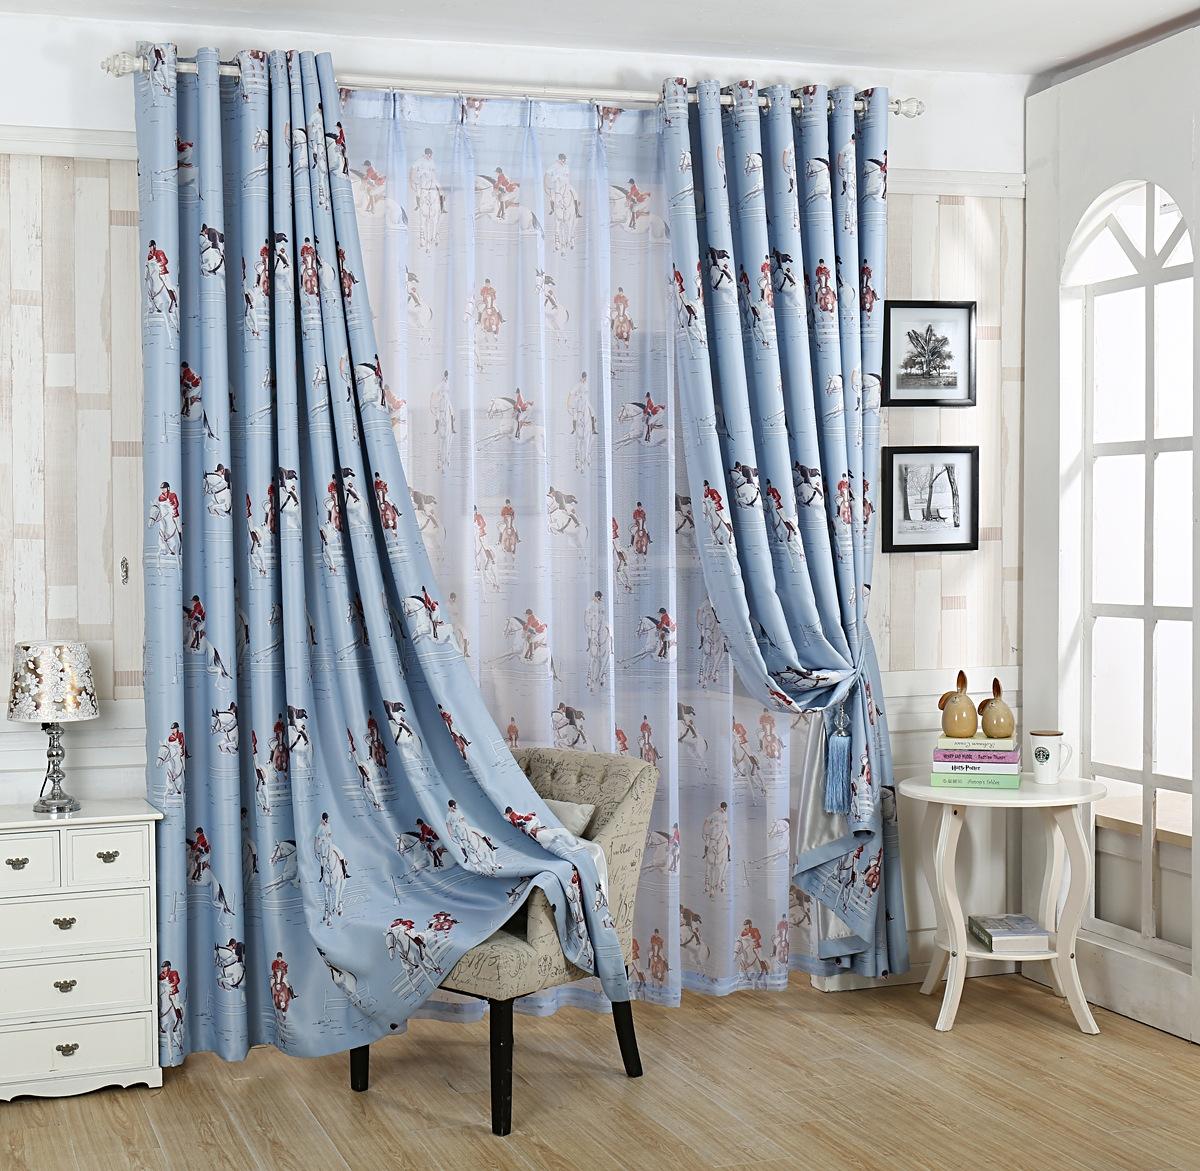 Online Buy Wholesale Thermal Bedroom Curtains From China Thermal Regarding Thermal Bedroom Curtains (Image 11 of 15)